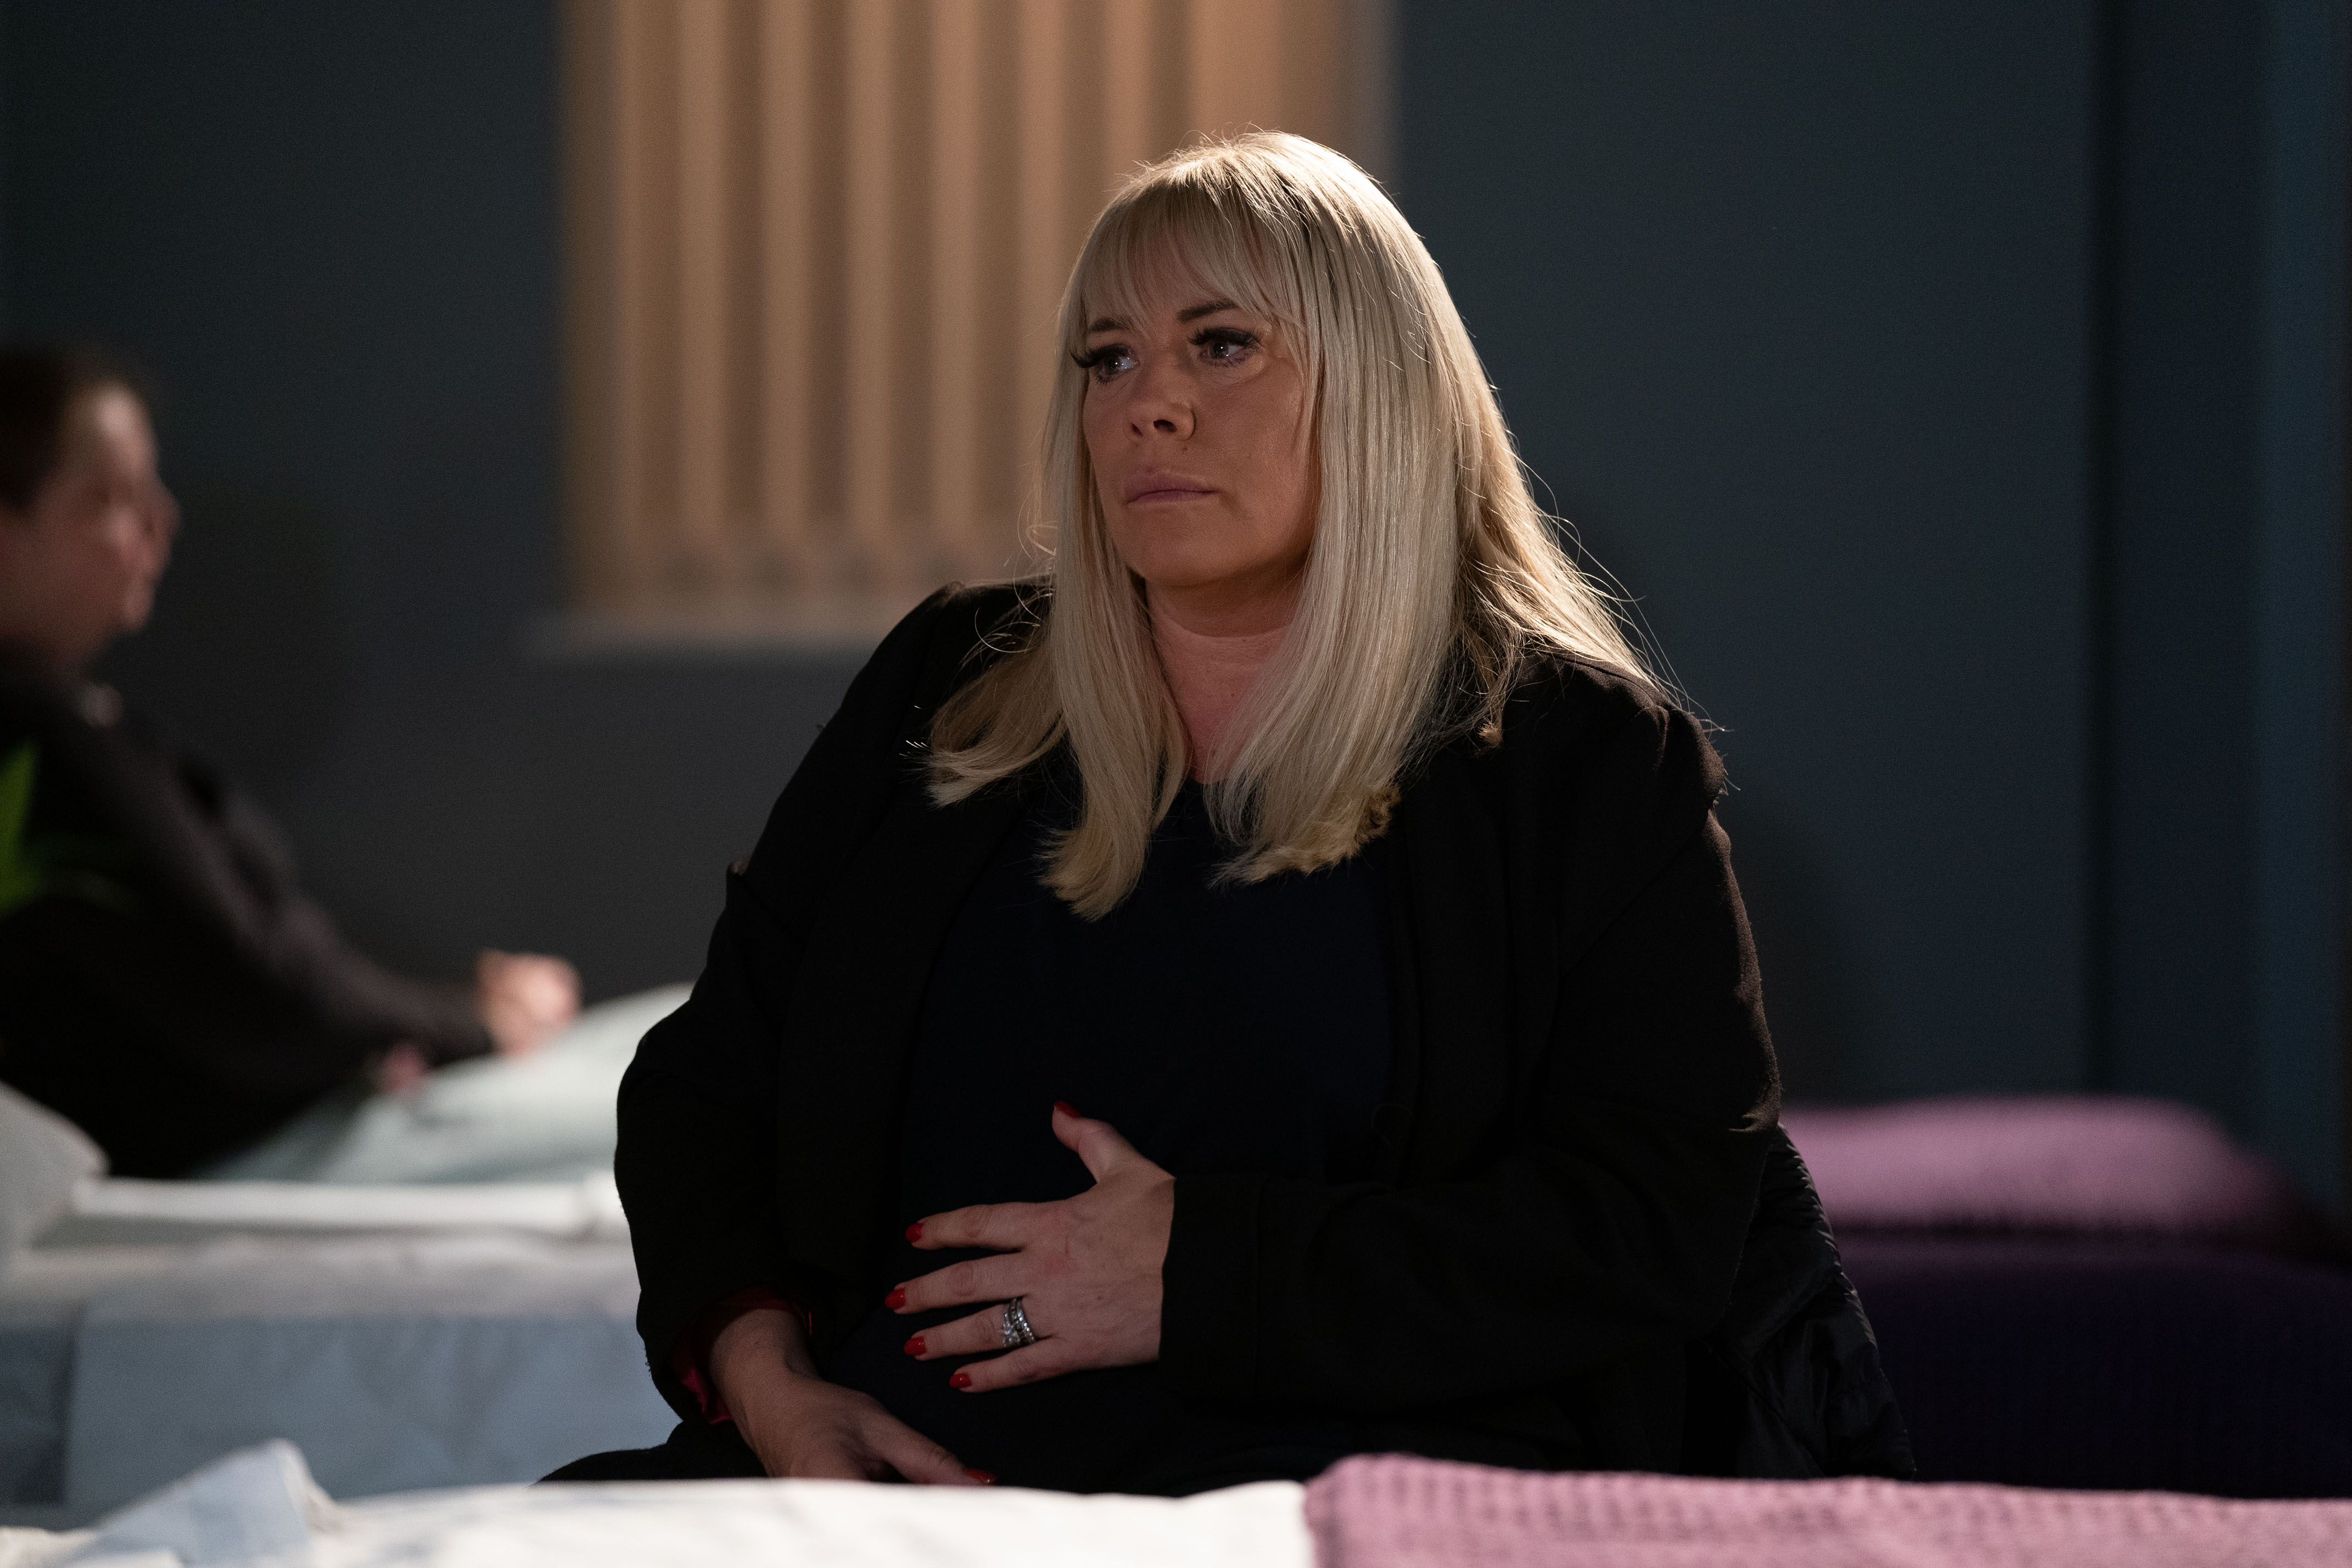 EastEnders SPOILERS: Sharon goes into labour